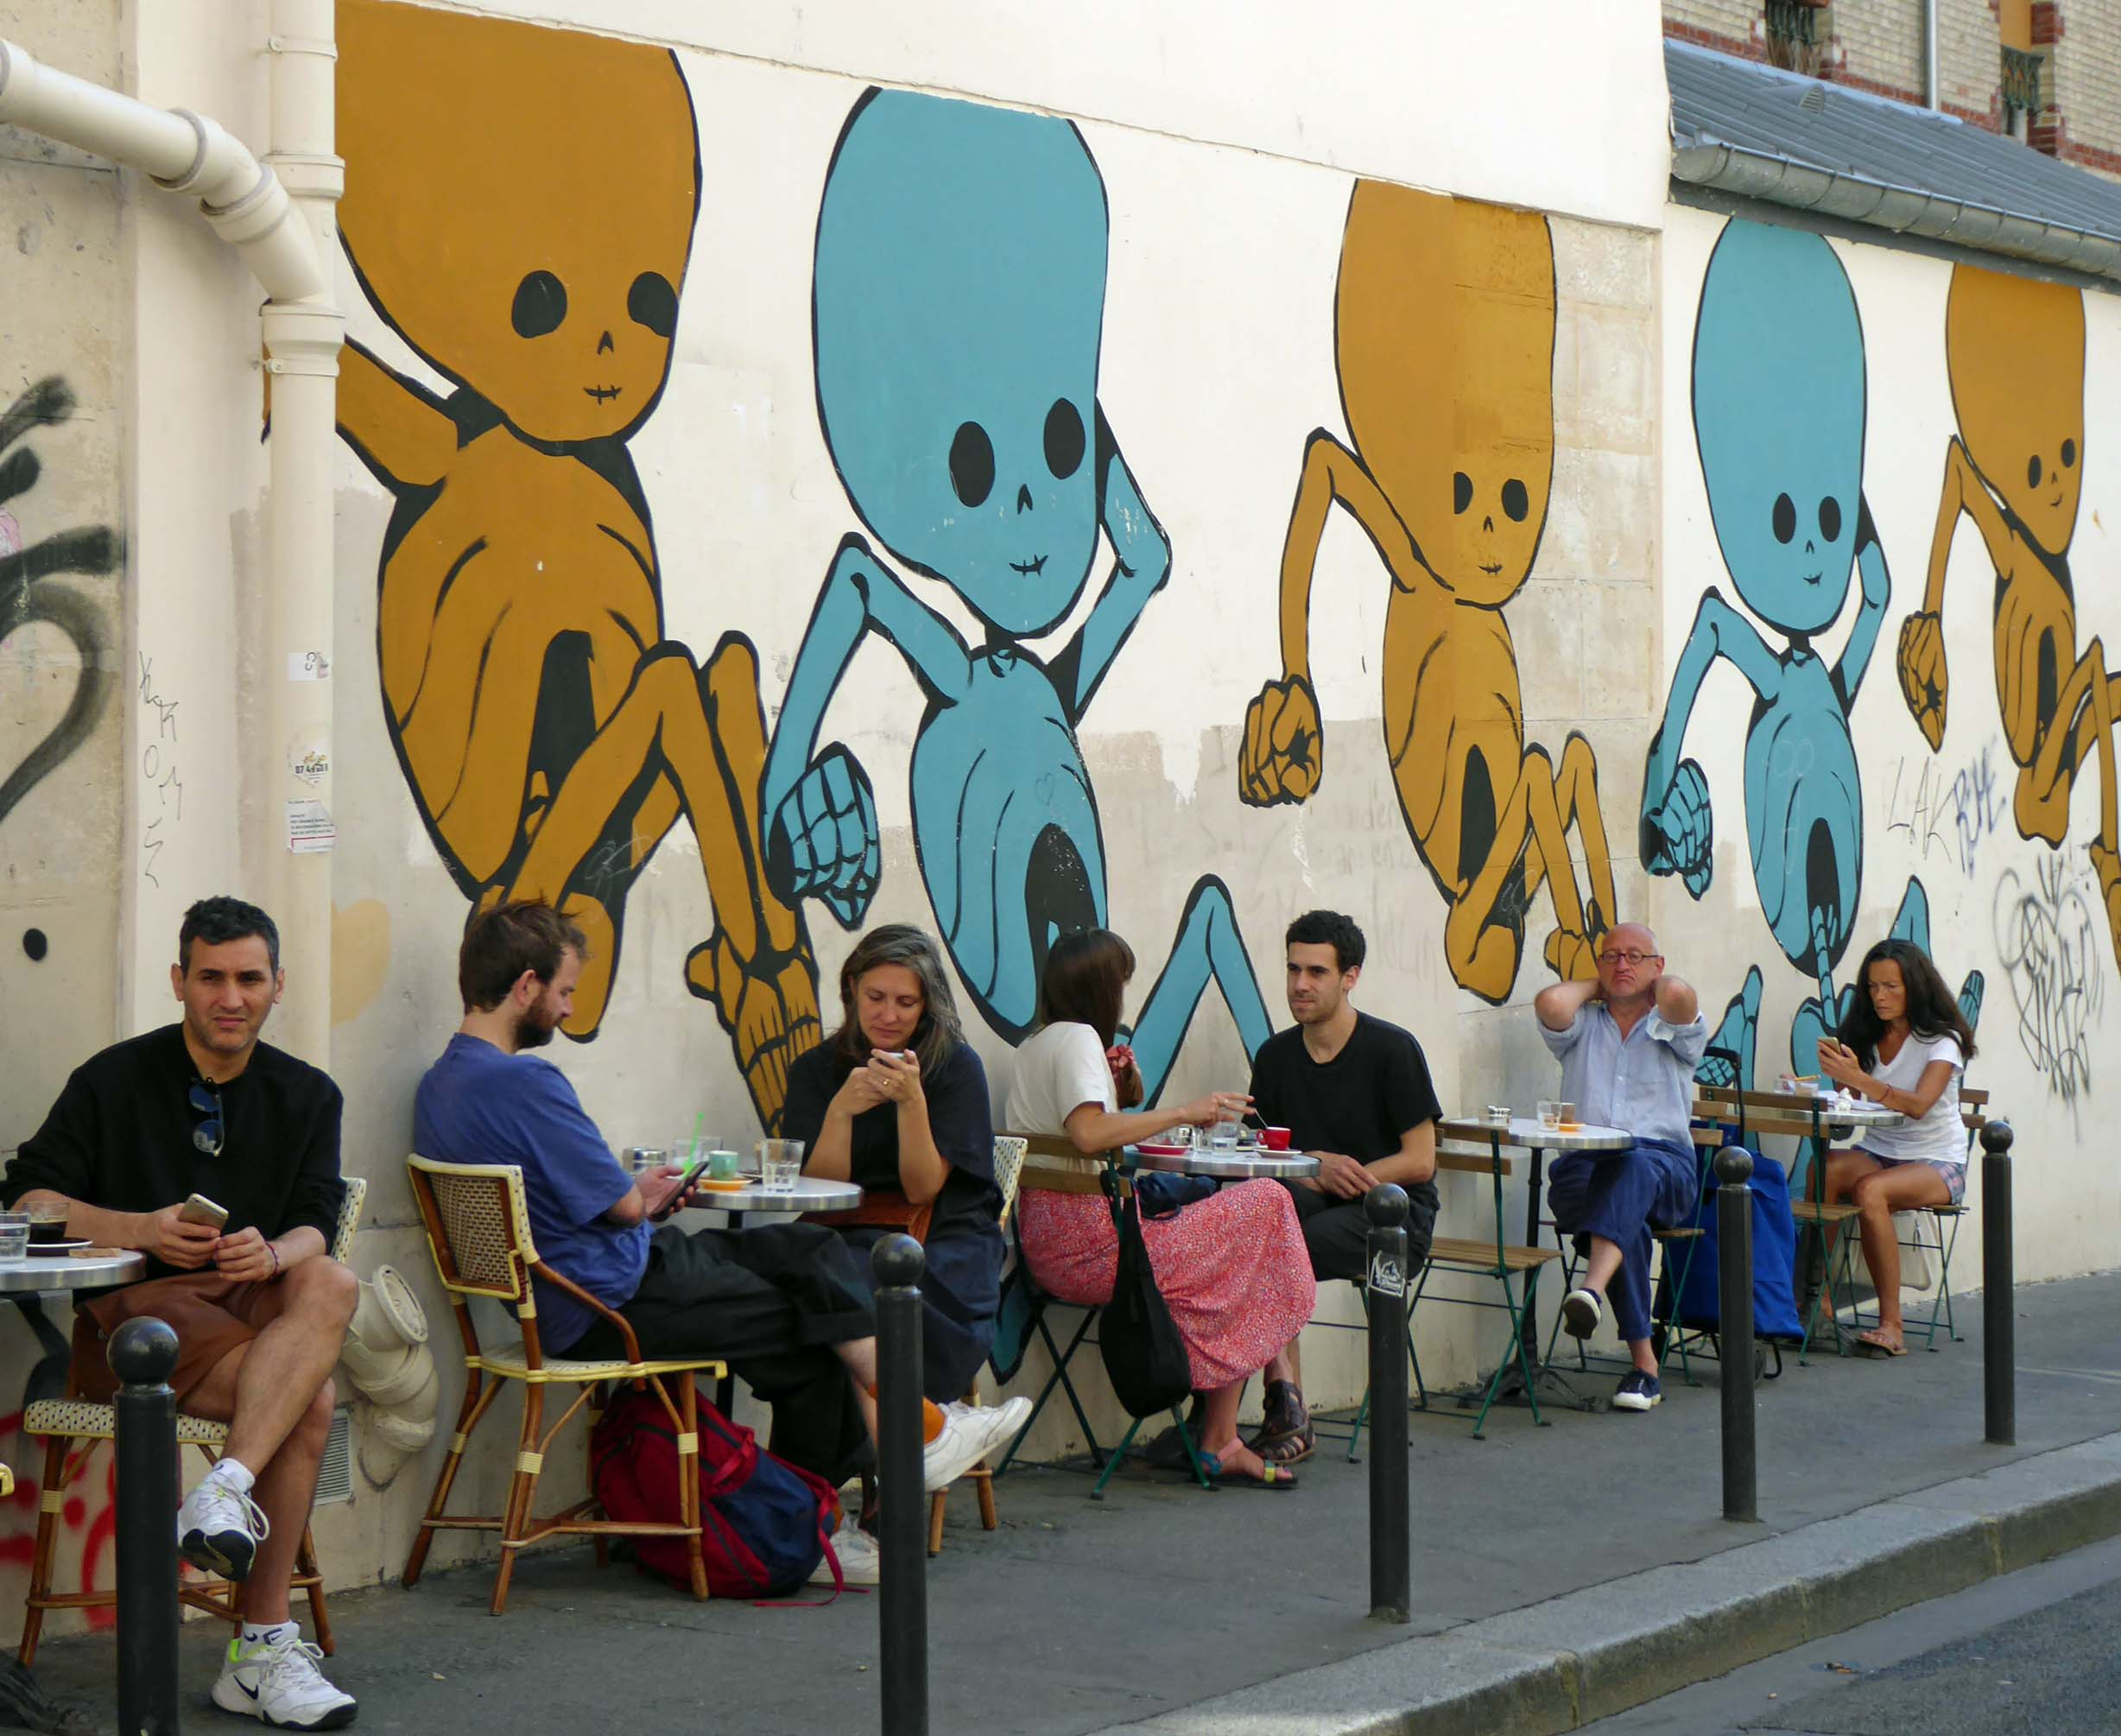 Couples sitting at tables by a painted wall